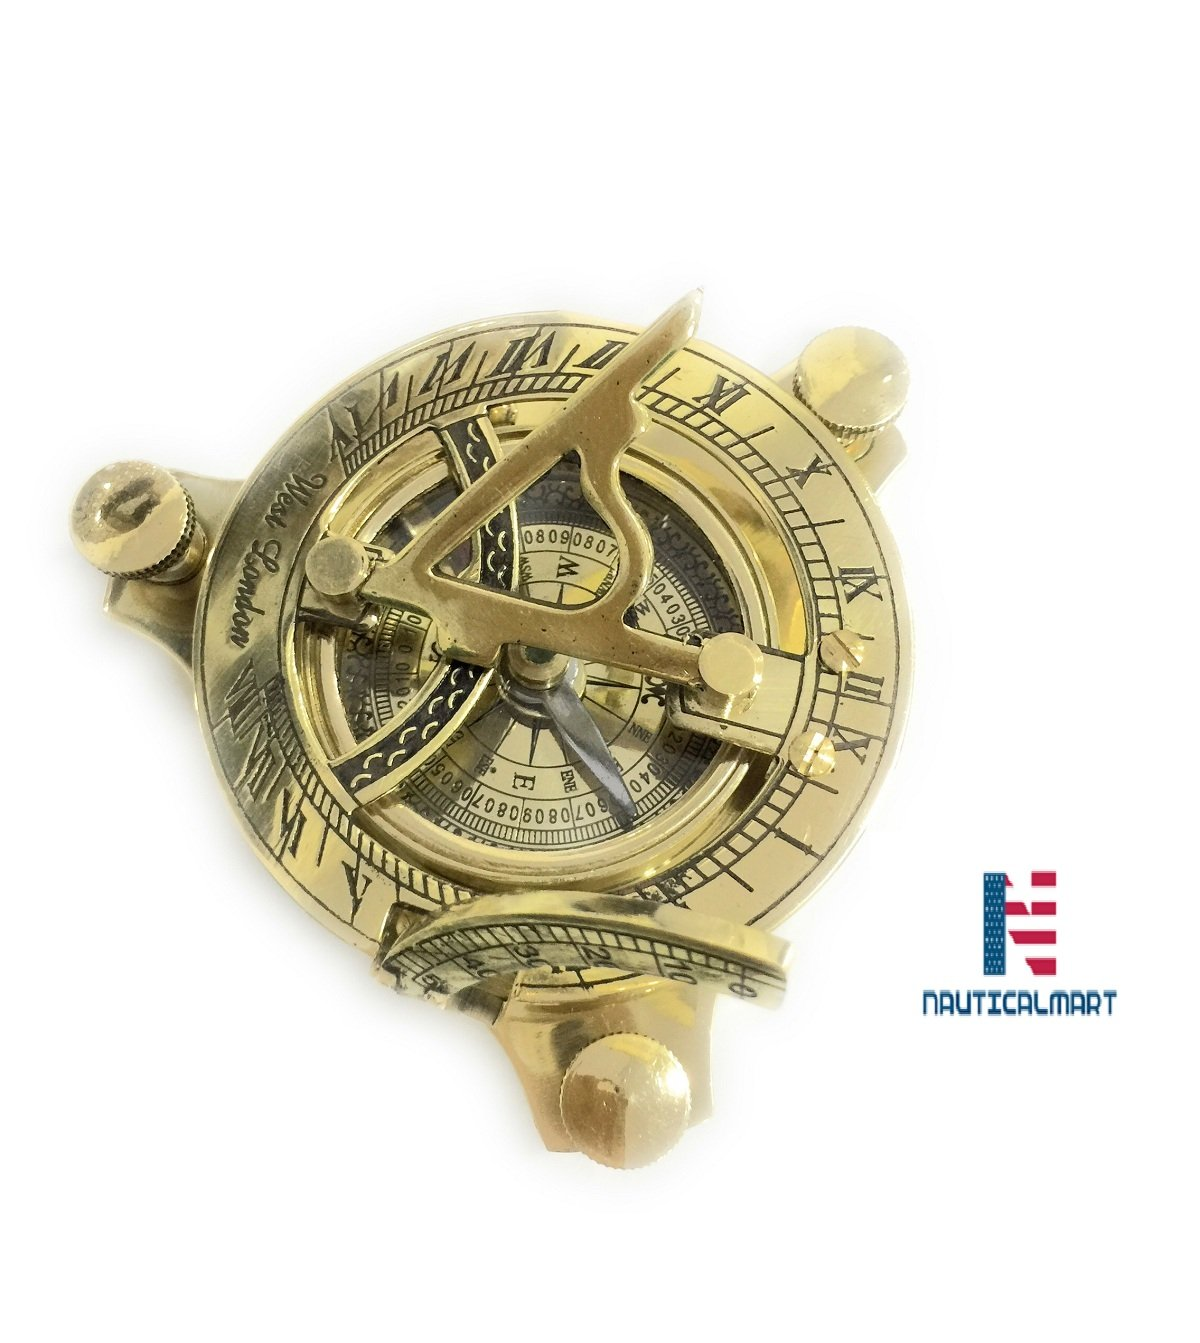 NM033710A Brass Sundial Compass 4'' - Case Pack of 16